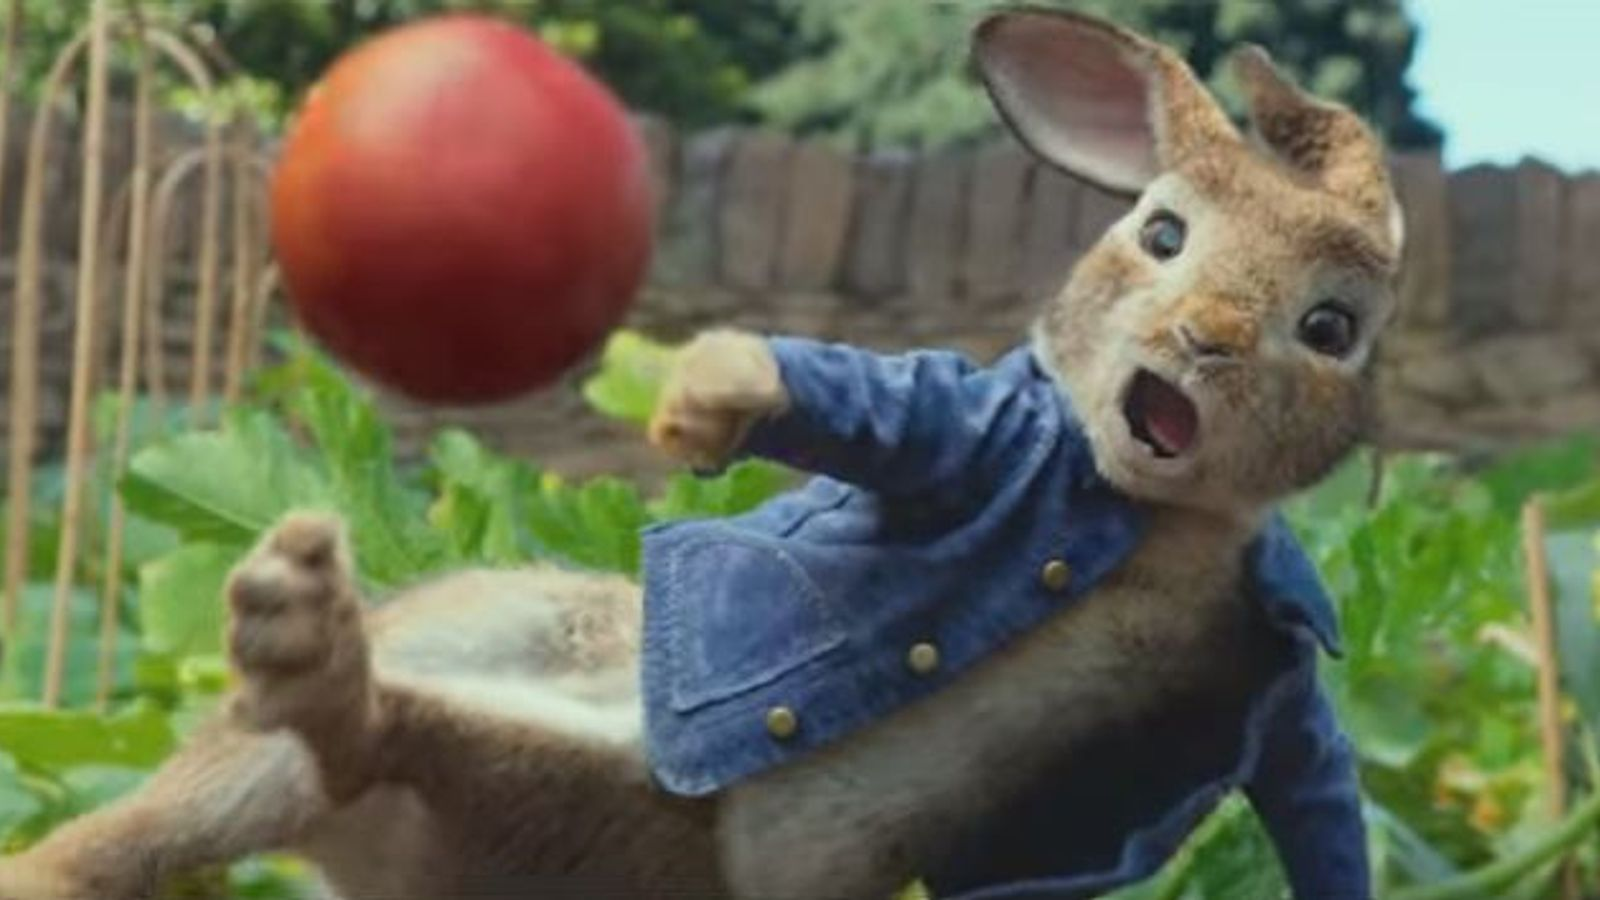 Calls to boycott Peter Rabbit film amid 'food allergy bullying' claims